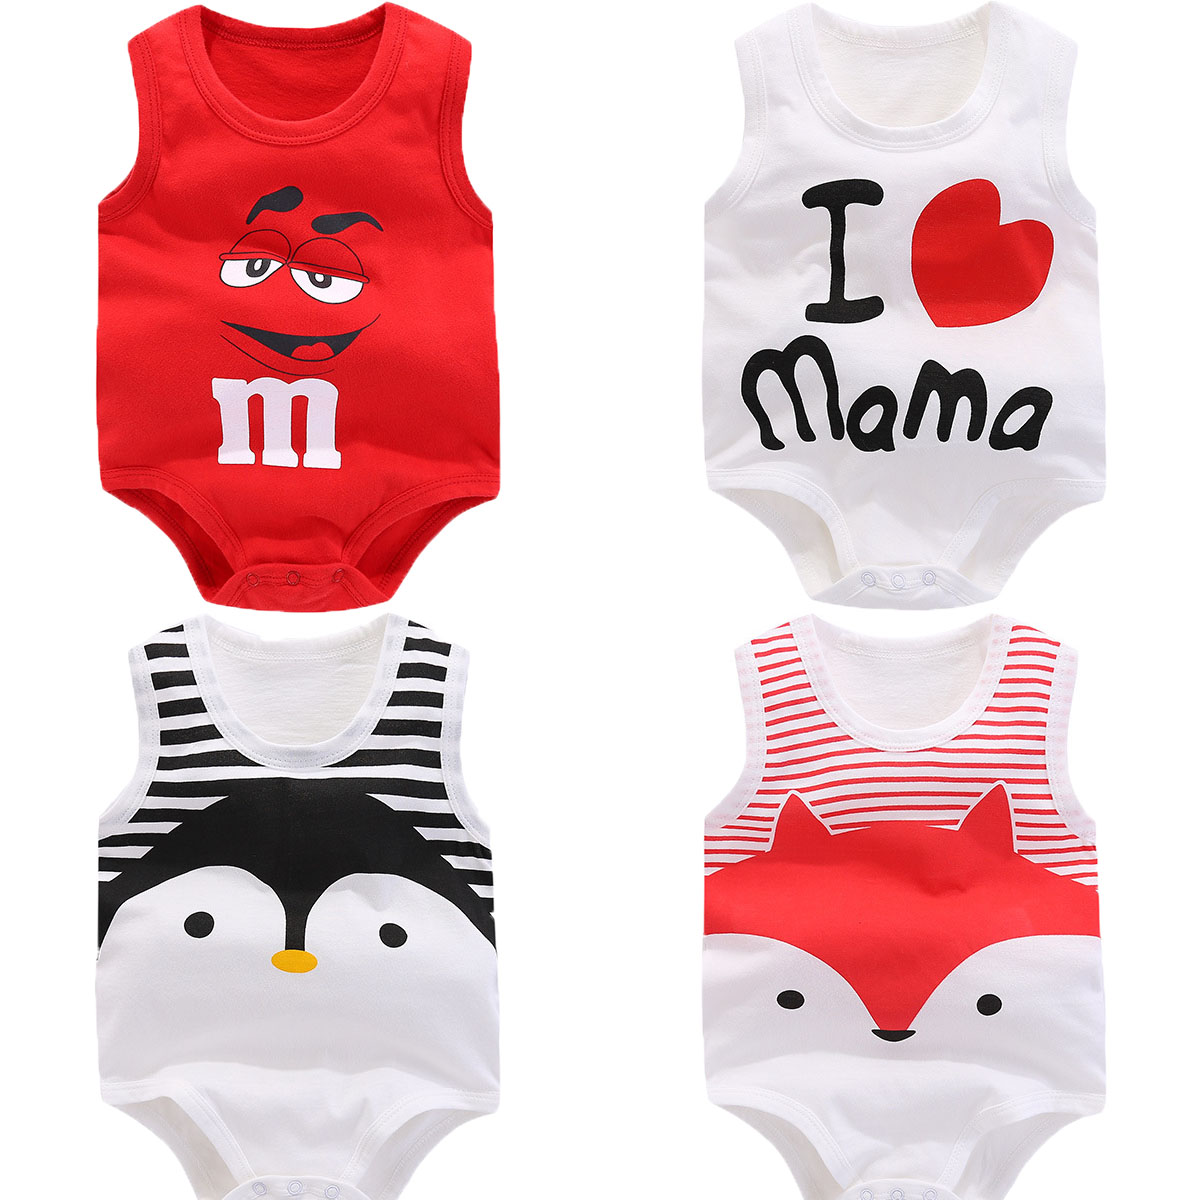 Unisex Newborn Baby   Rompers   Cotton summer sleeveless Baby Boy Clothes Infant Jumpsuits Baby Girls clothes 0-24M